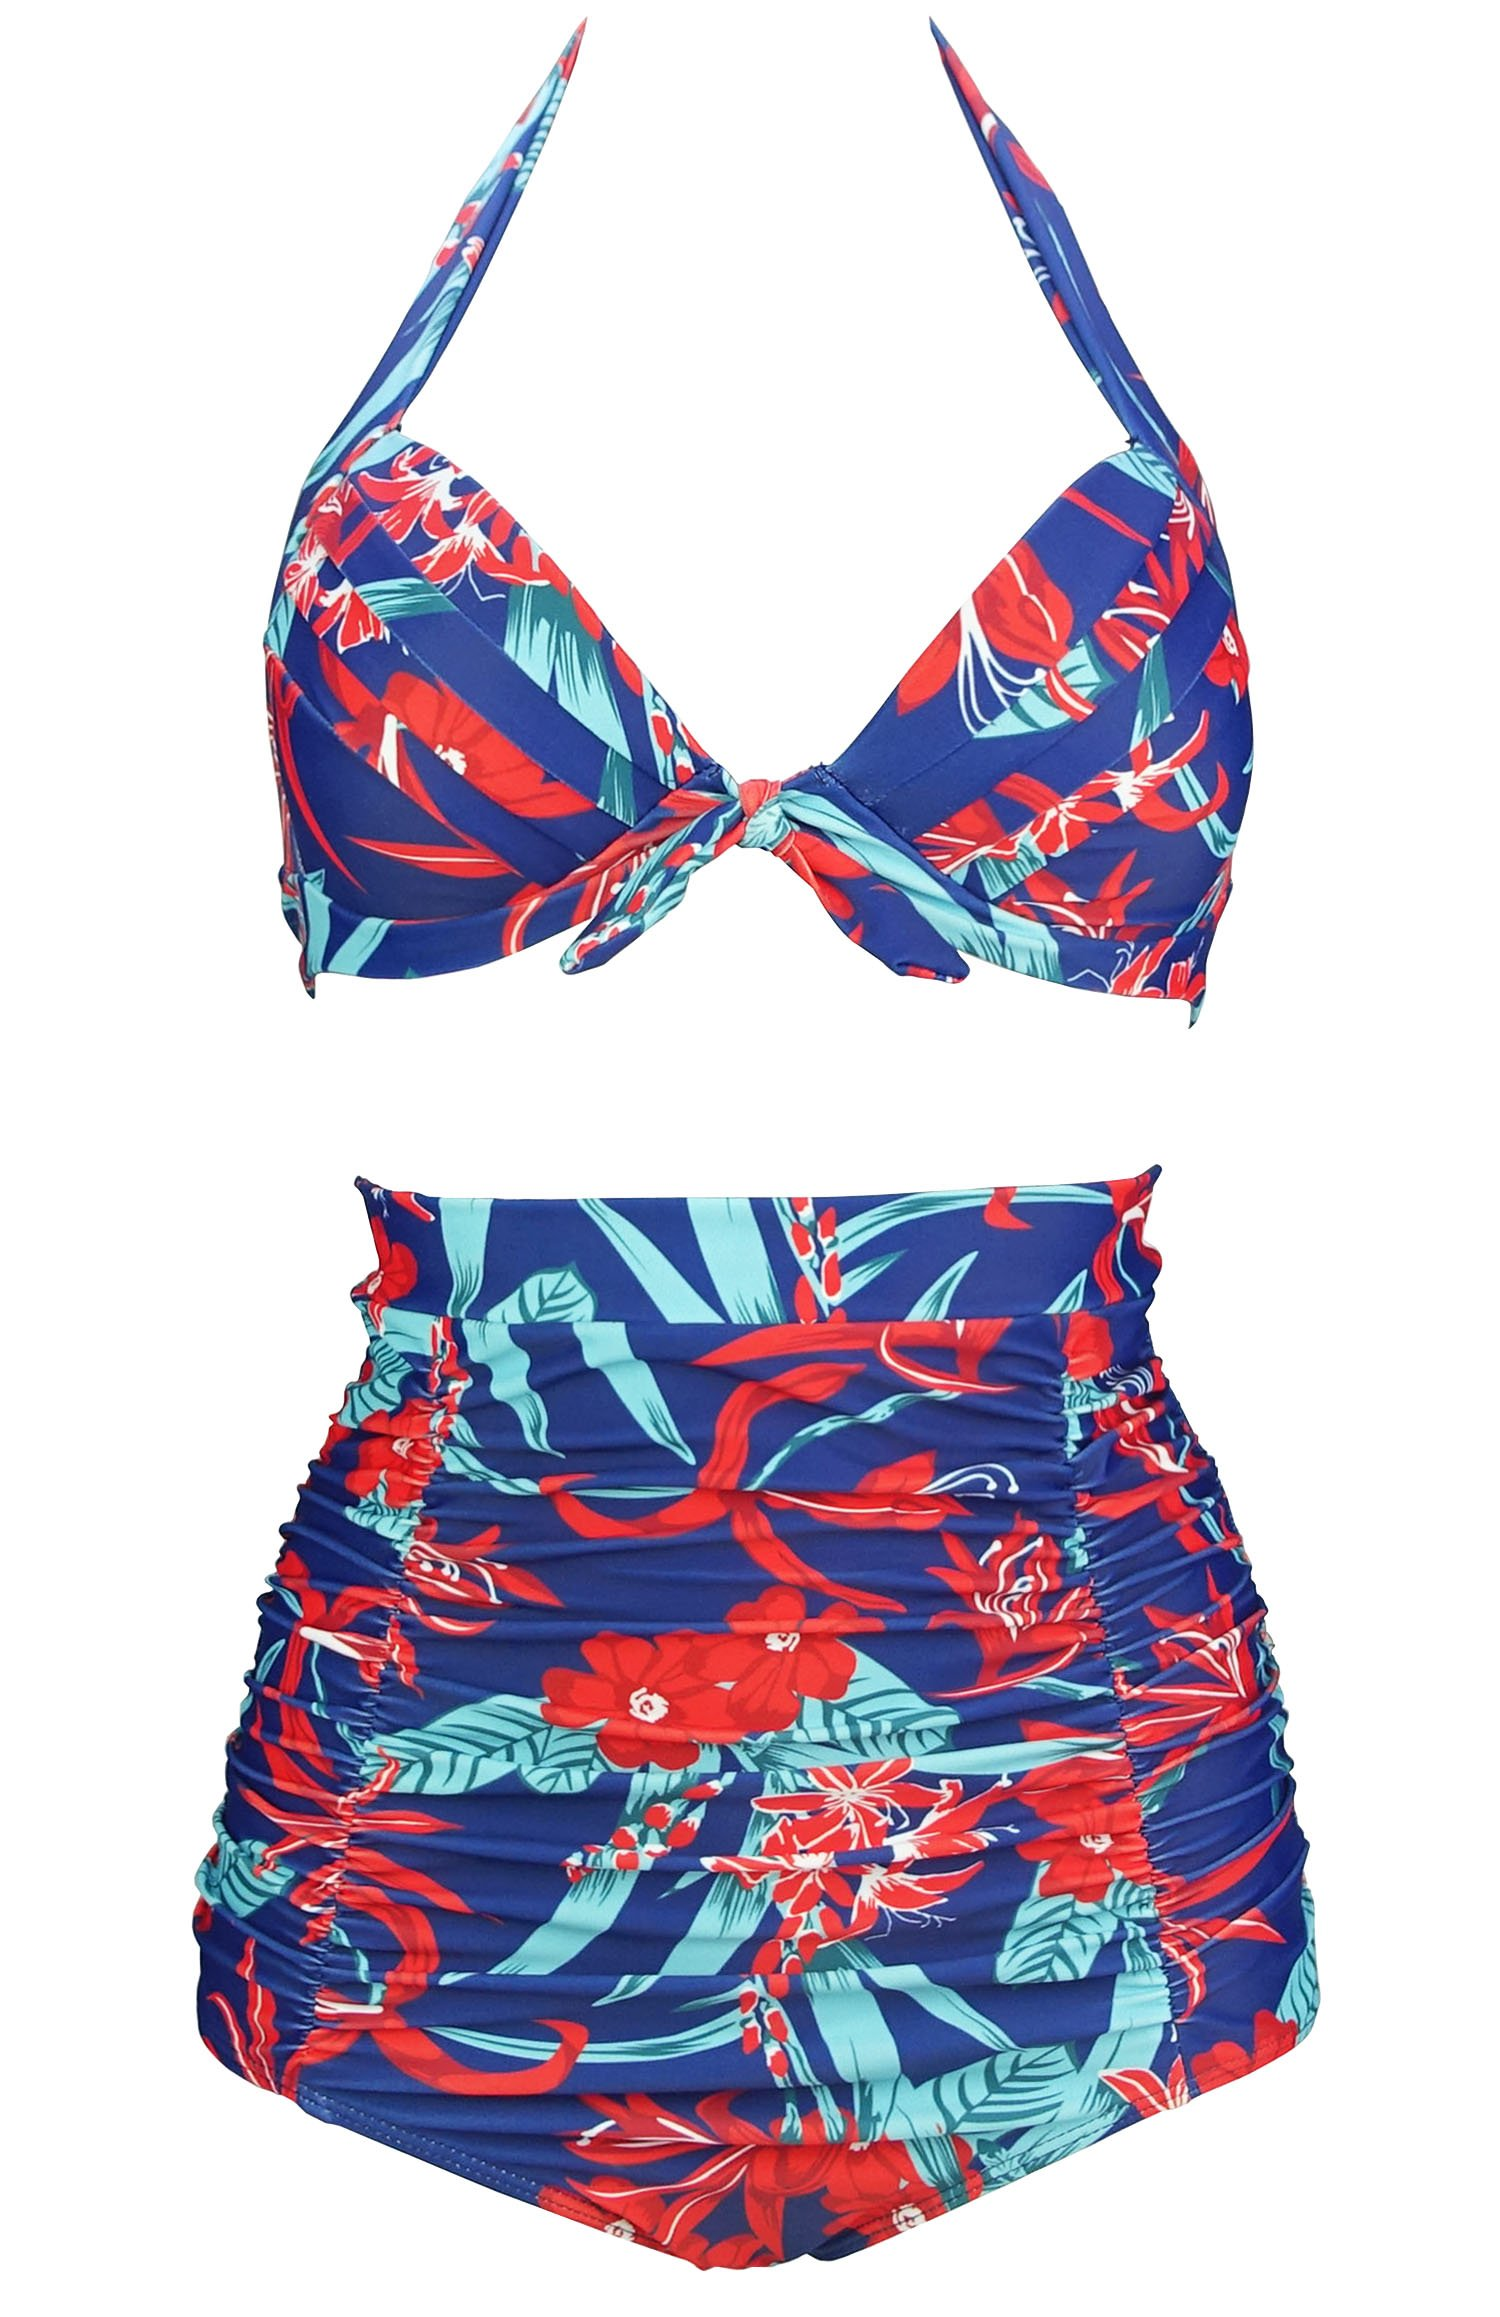 e60a789e72 Galleon - COCOSHIP Navy   Red White Pistil Bloom Tie Front Floral Top  Halter High Waist Bikini Set Ruched Bathing Waterwear S